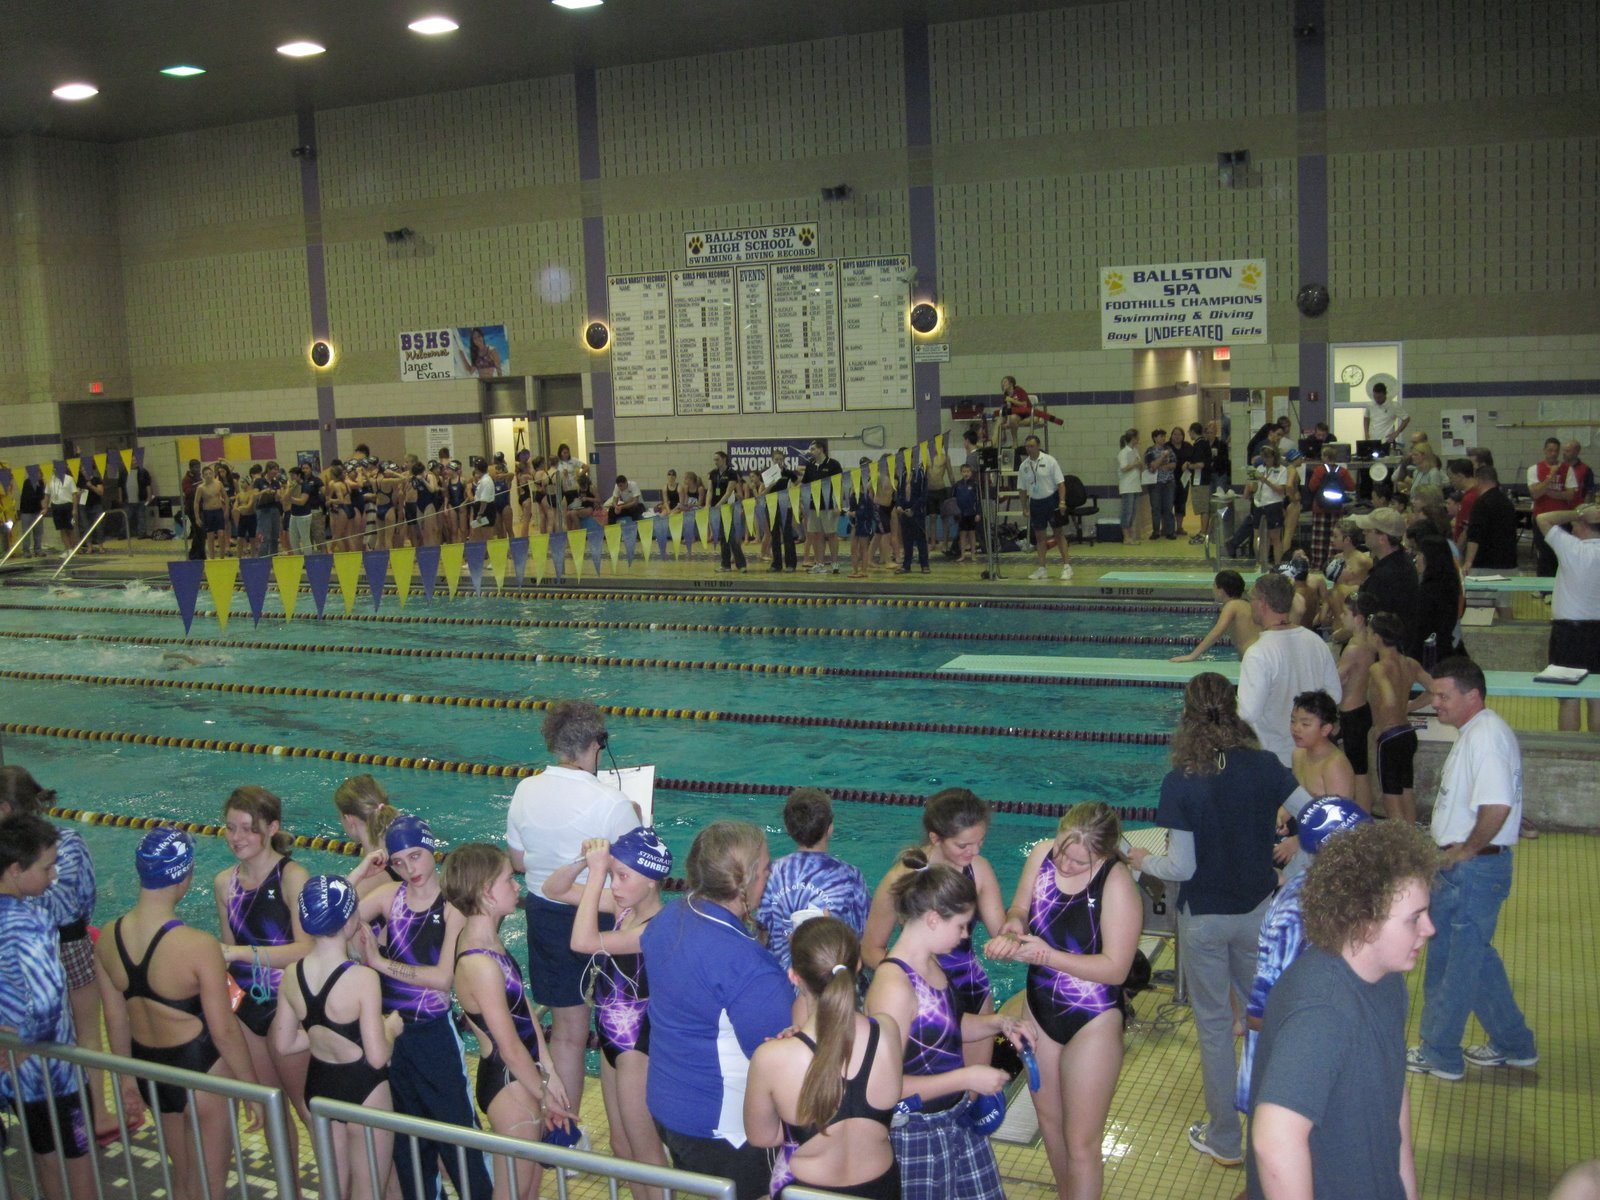 Saratoga Stingrays The Harvest Invitational Ballston Spa